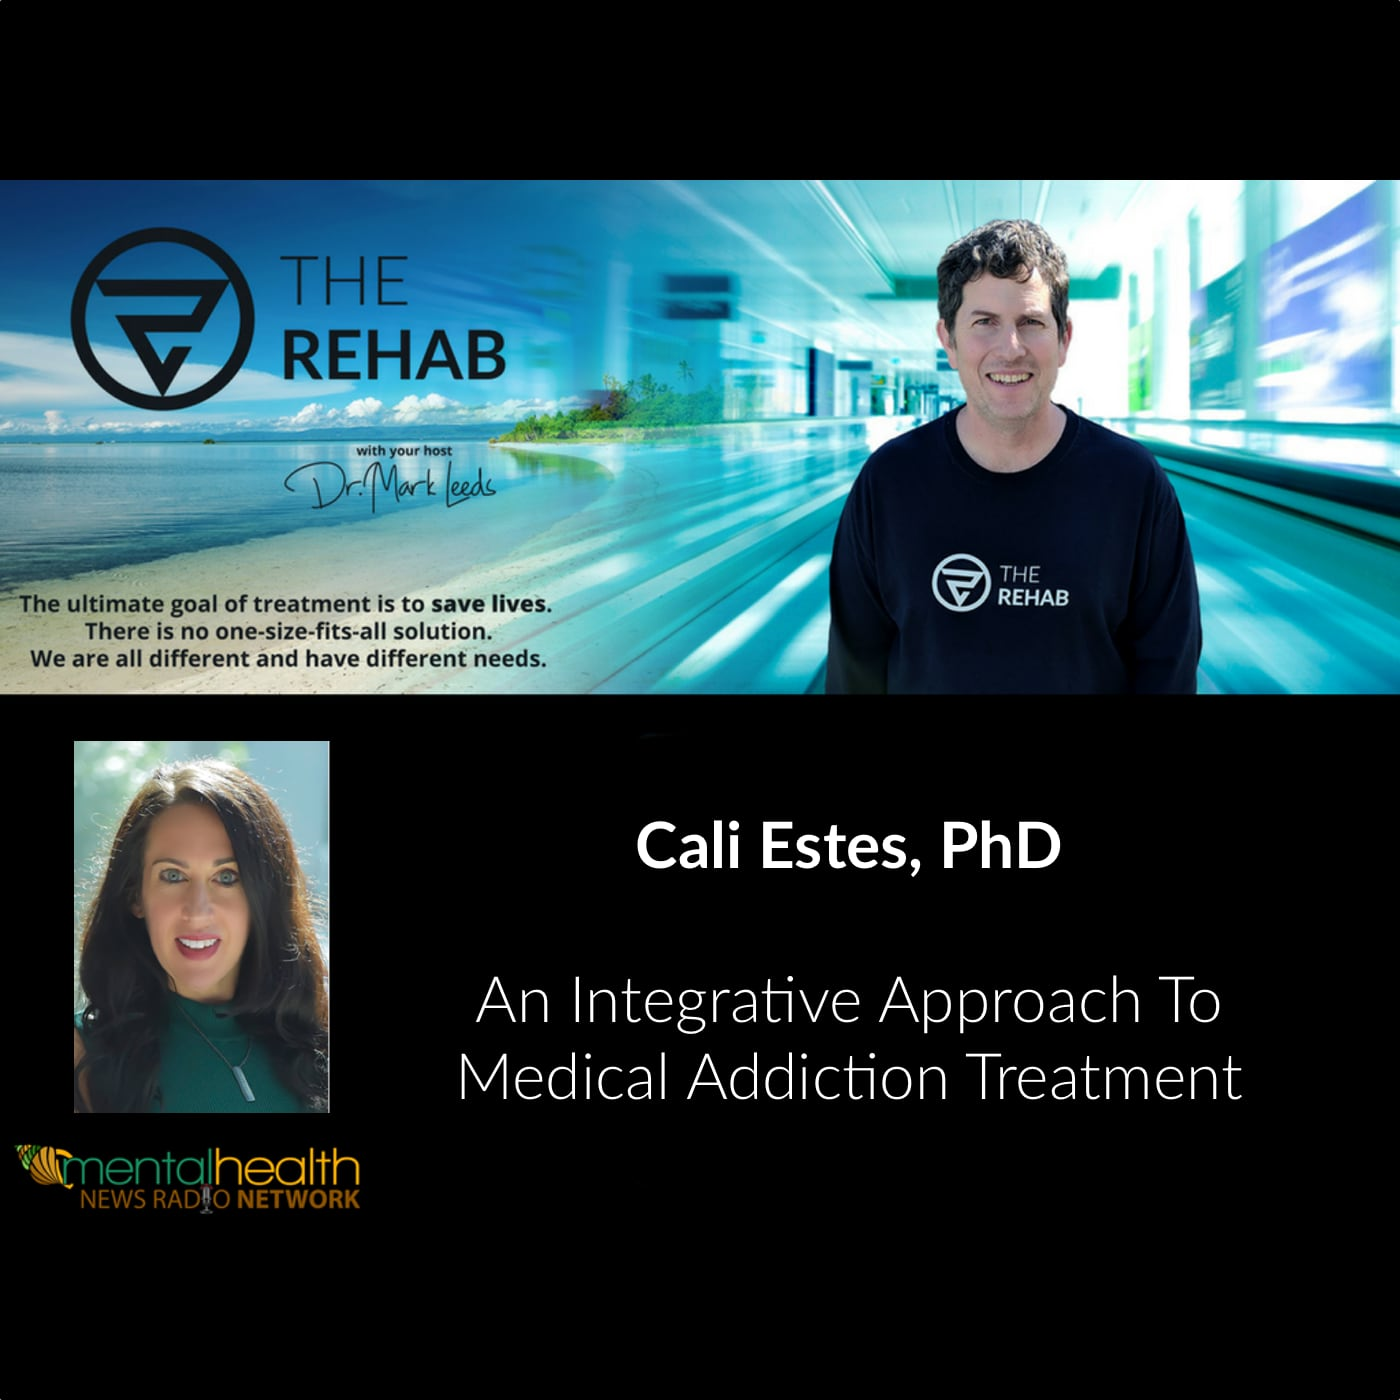 Dr. Cali Estes, Celebrity Addiction Coach On Integrative Medical Addiction Treatment